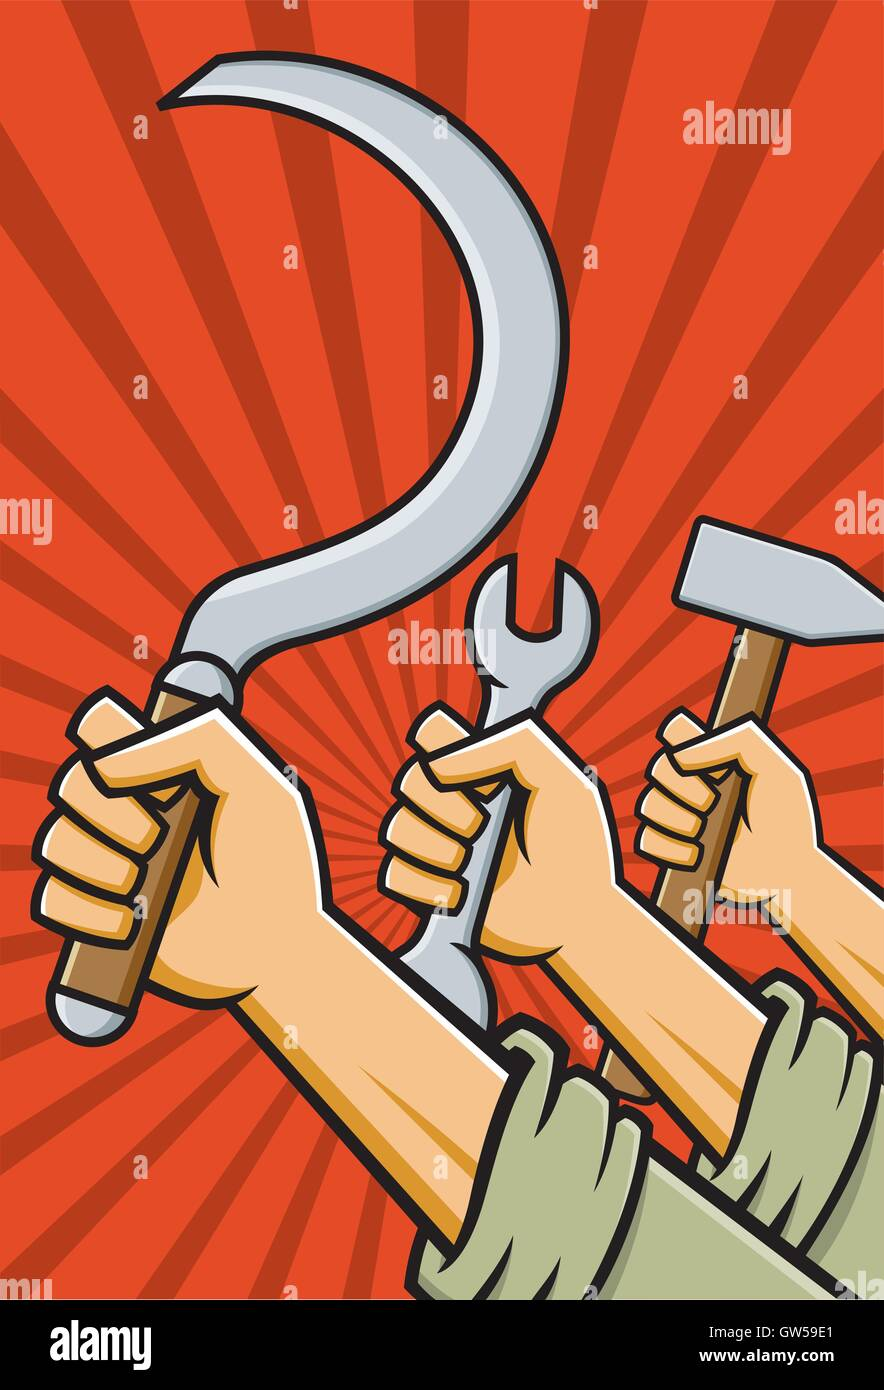 Raised Soviet fists holding tools Hammer sickle and wrench in style of Russian Constructivist Propaganda posters. - Stock Vector